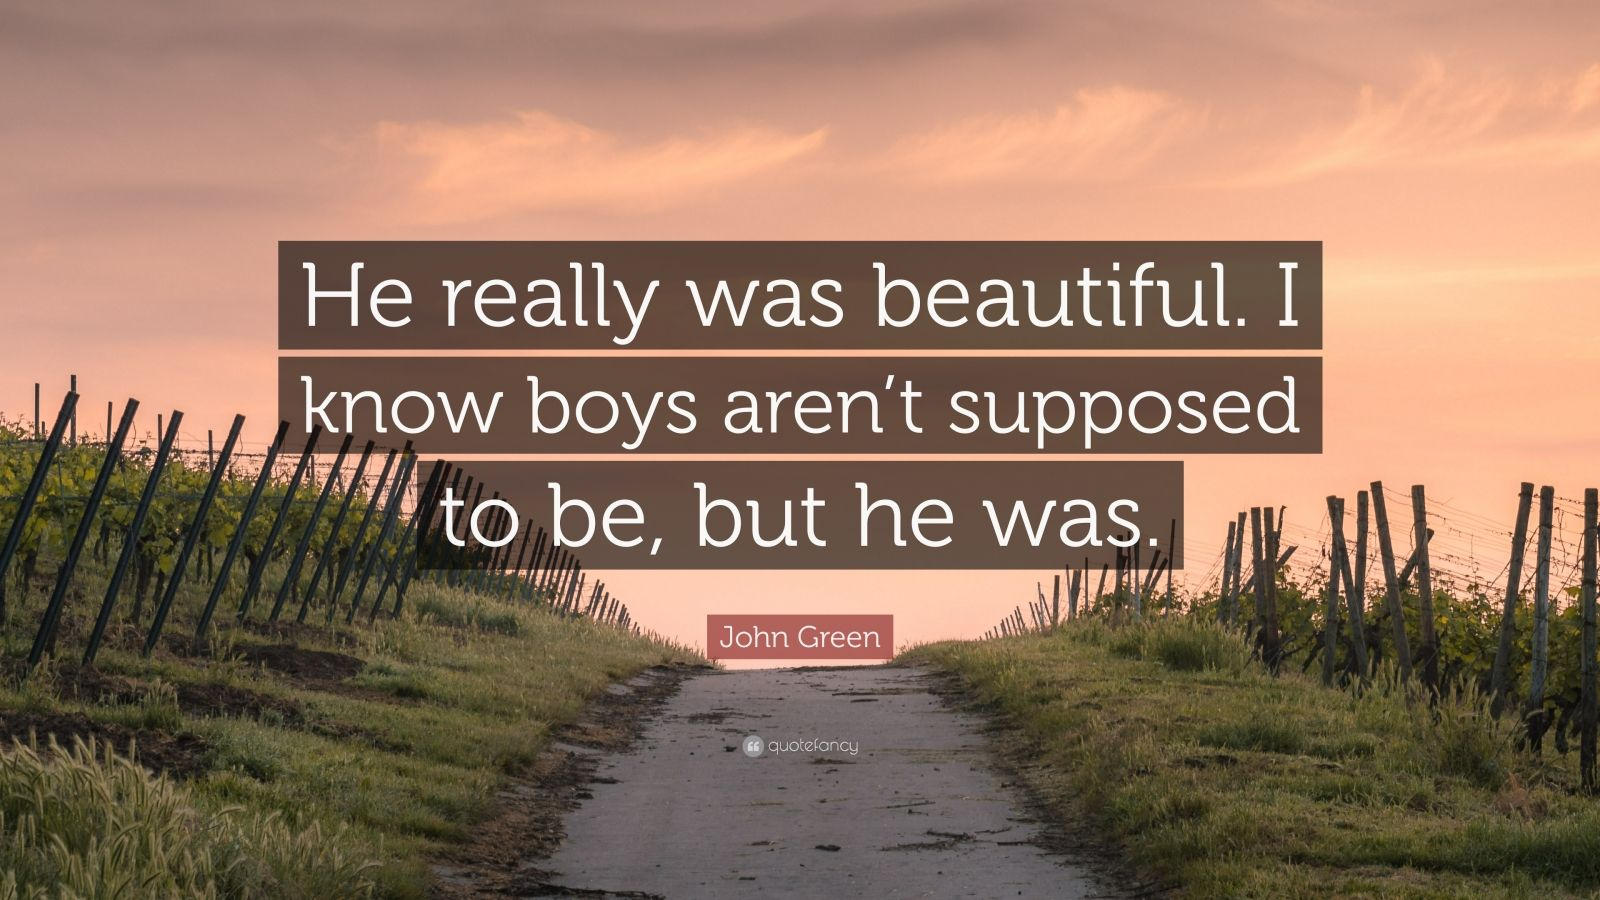 """John Green Quote: """"He really was beautiful. I know boys aren't supposed to be, but he was."""""""